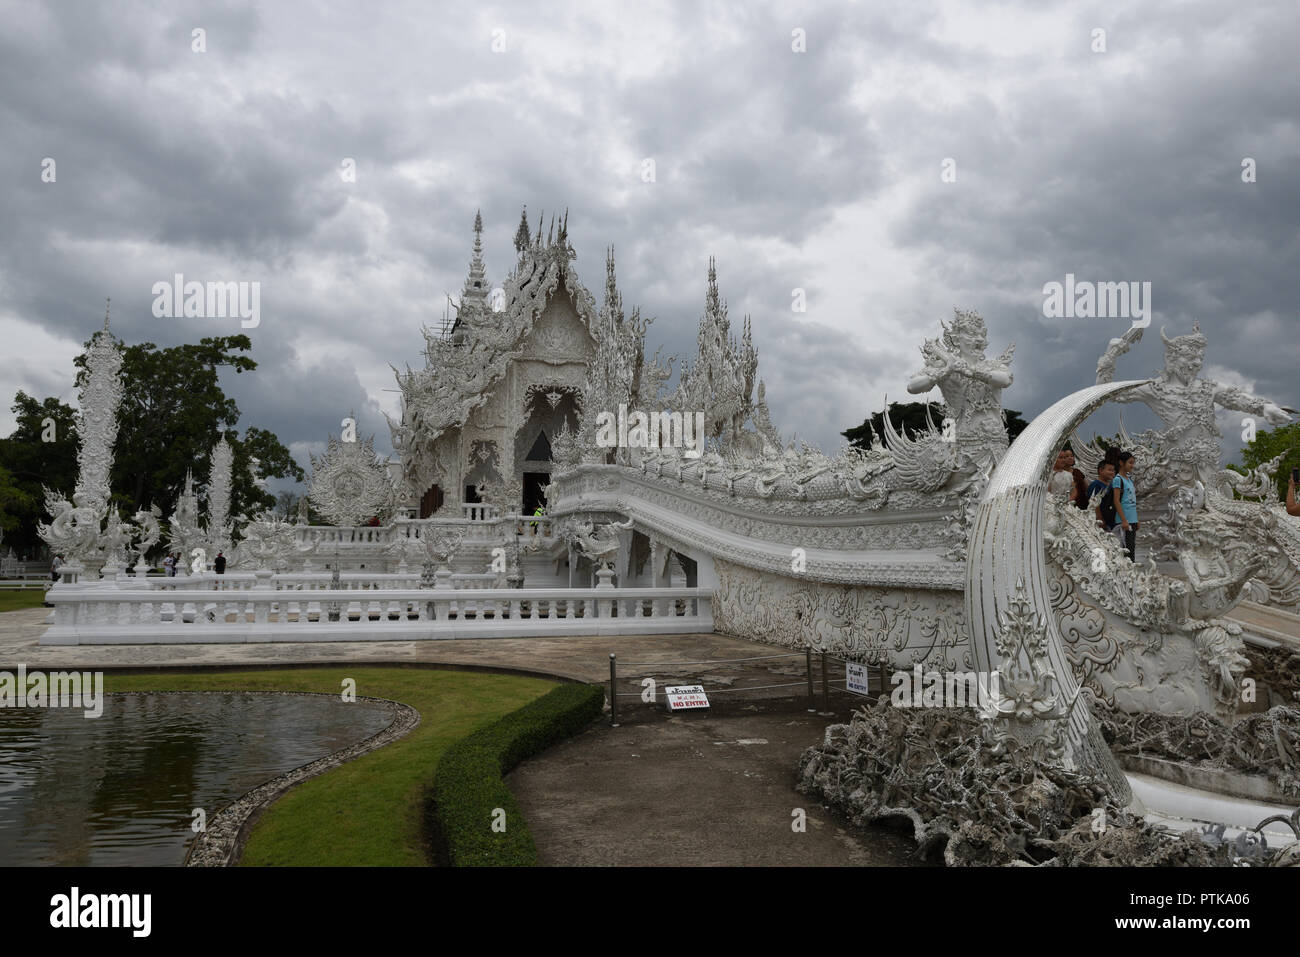 Wat Rong Khun, also known as the White Temple, Chiang Rai, Thailand Stock Photo